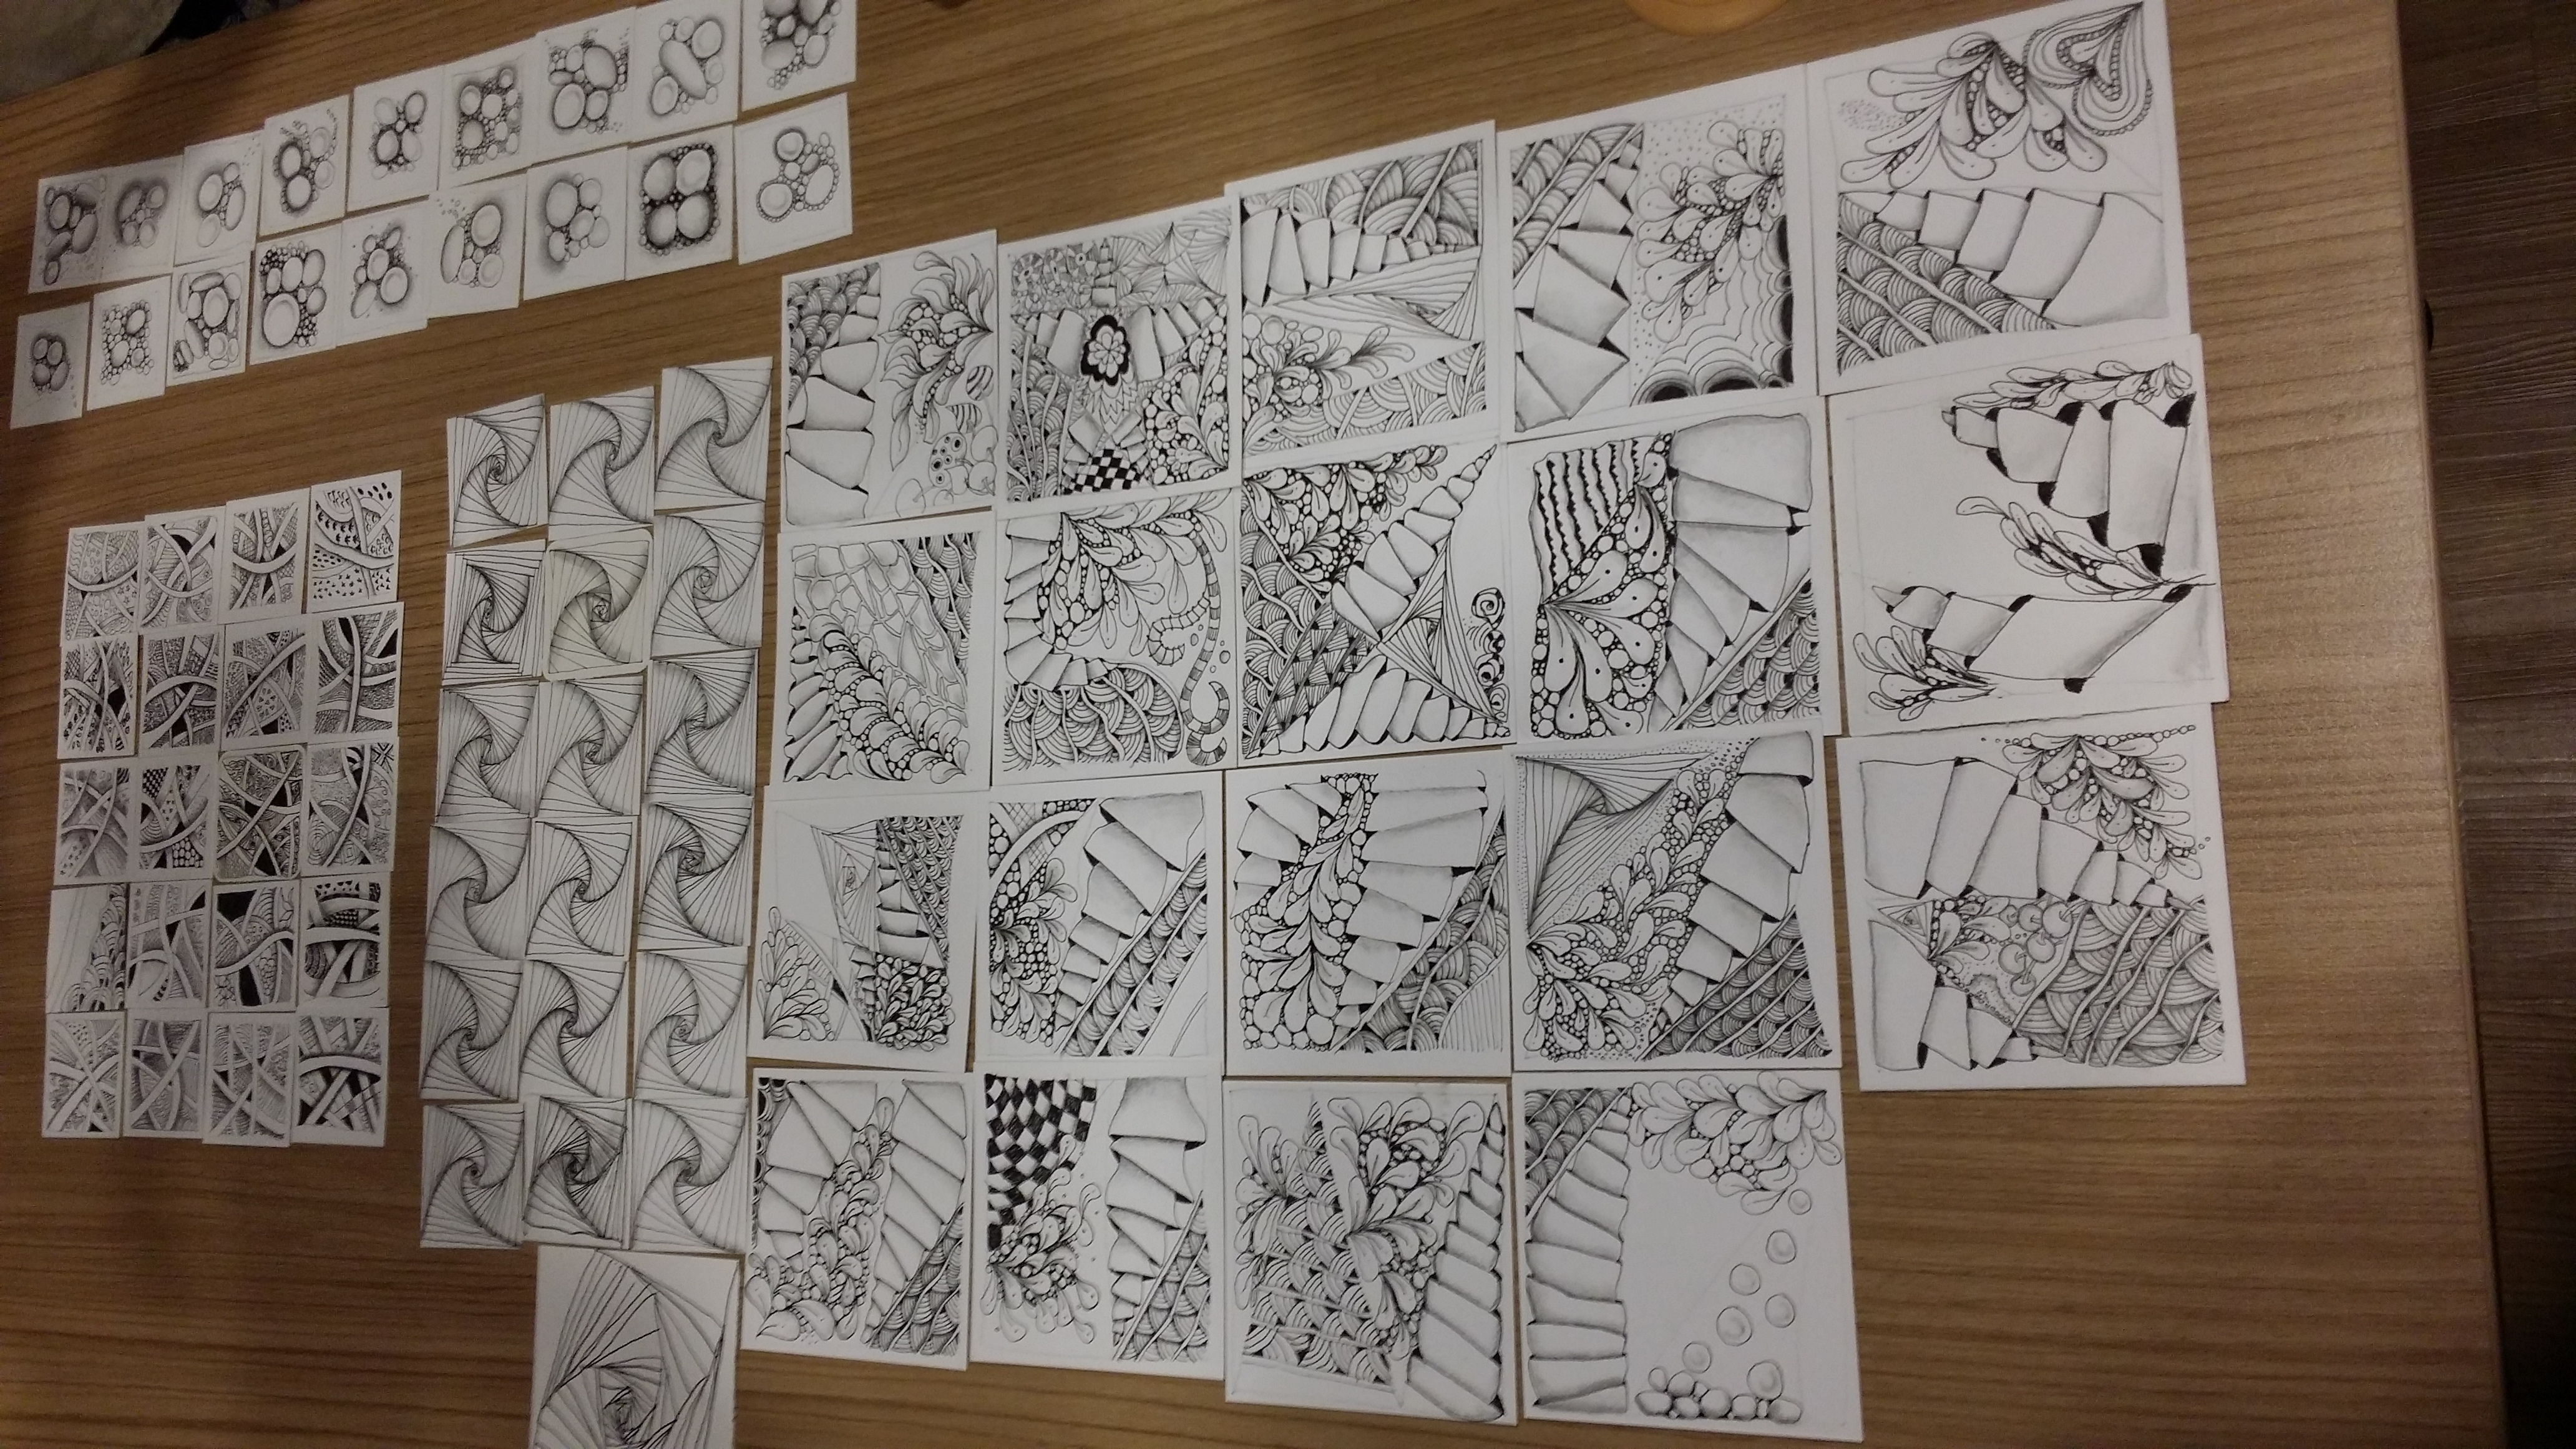 s.compile of student works